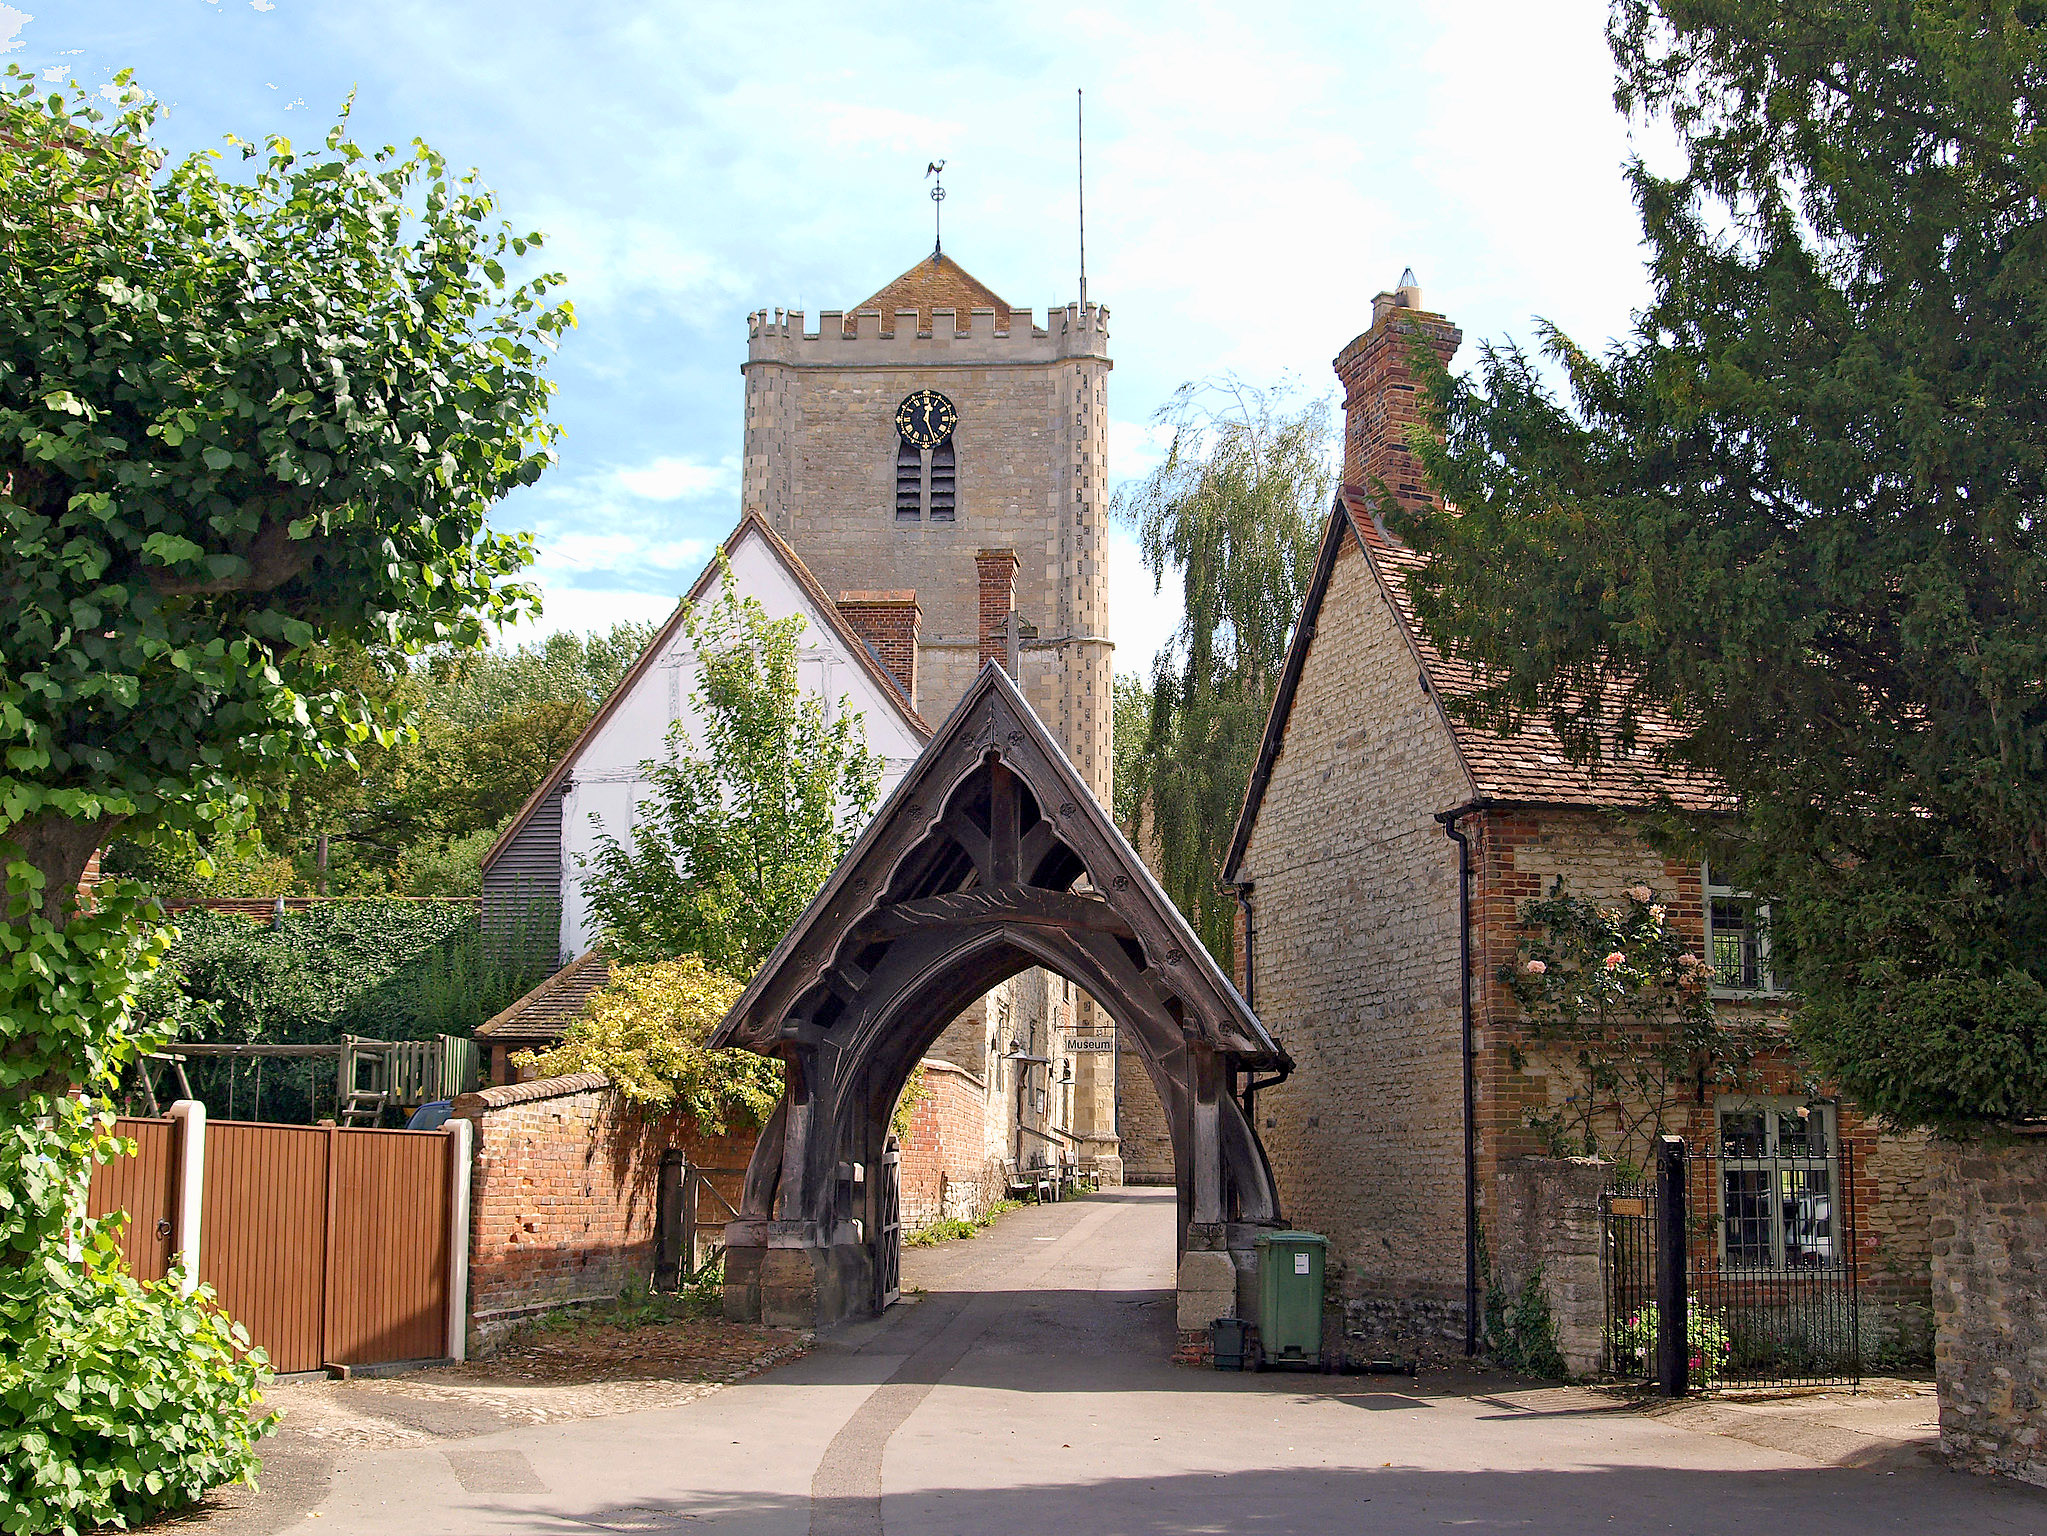 Dorchester Abbey and lych-gate, Dorchester, Oxfordshire by Andrew S Brown.jpg